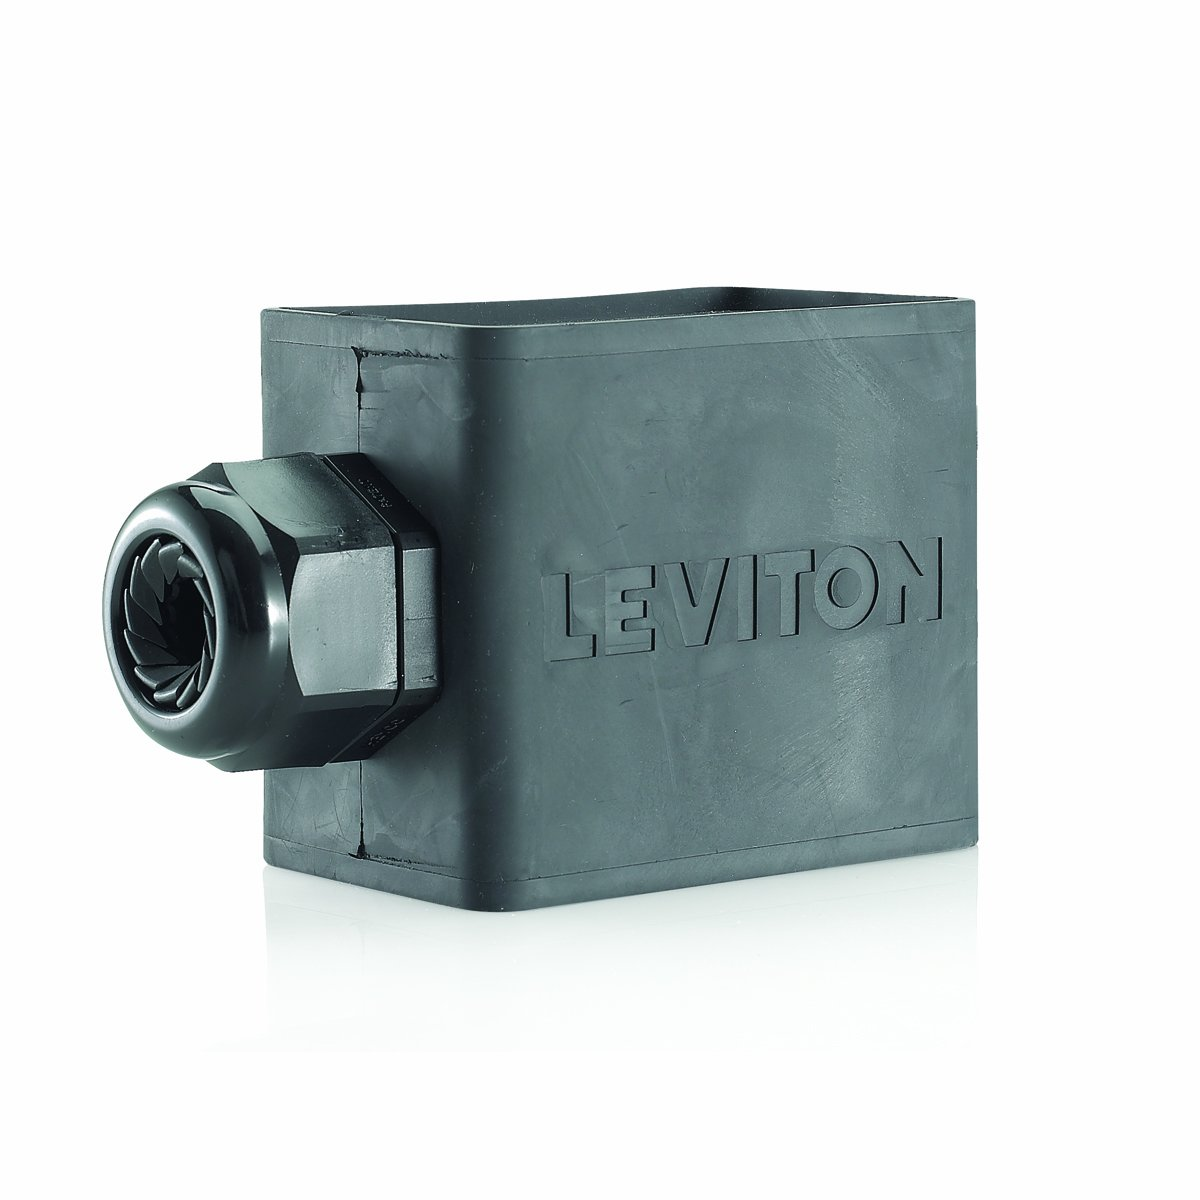 Cable Diameter 0.590-Inch 1.000-Inch Standard Depth Pendant Style Single-Gang Leviton 3059-2E Portable Outlet Box Black